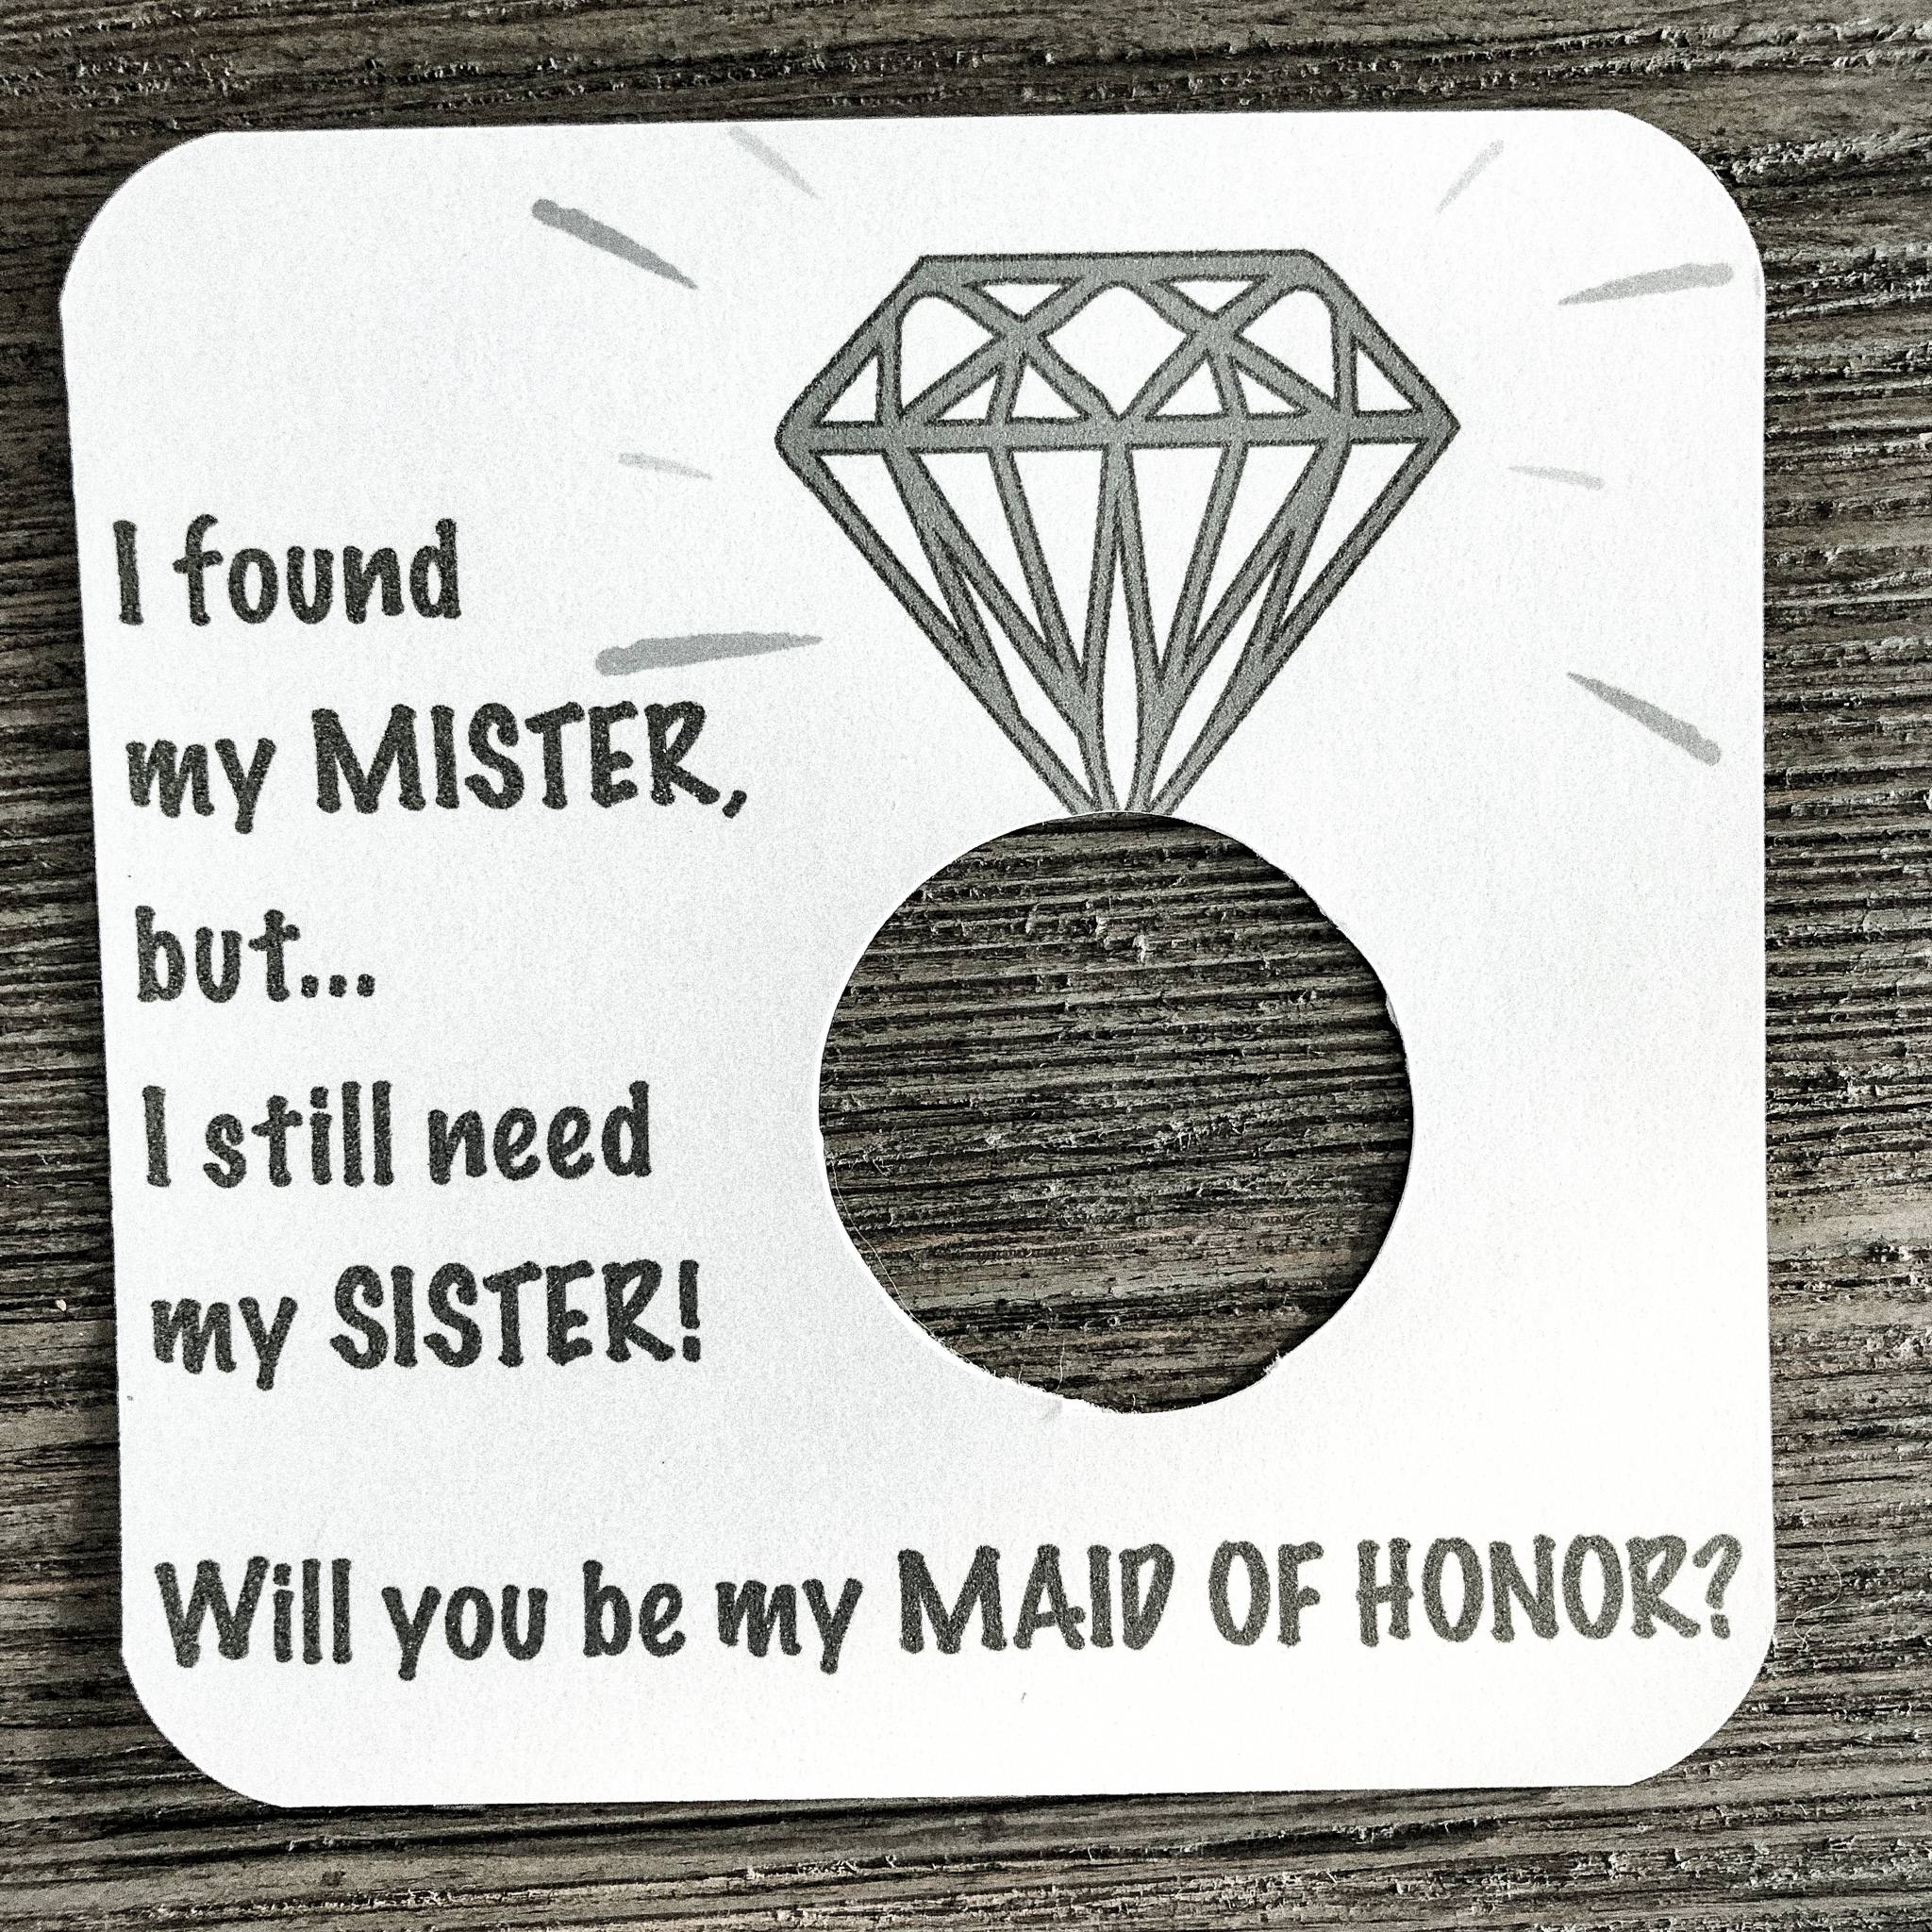 I found my mister, but I still need my sister! Will you be my maid of maid of honor? Shimmer champagnecard stock